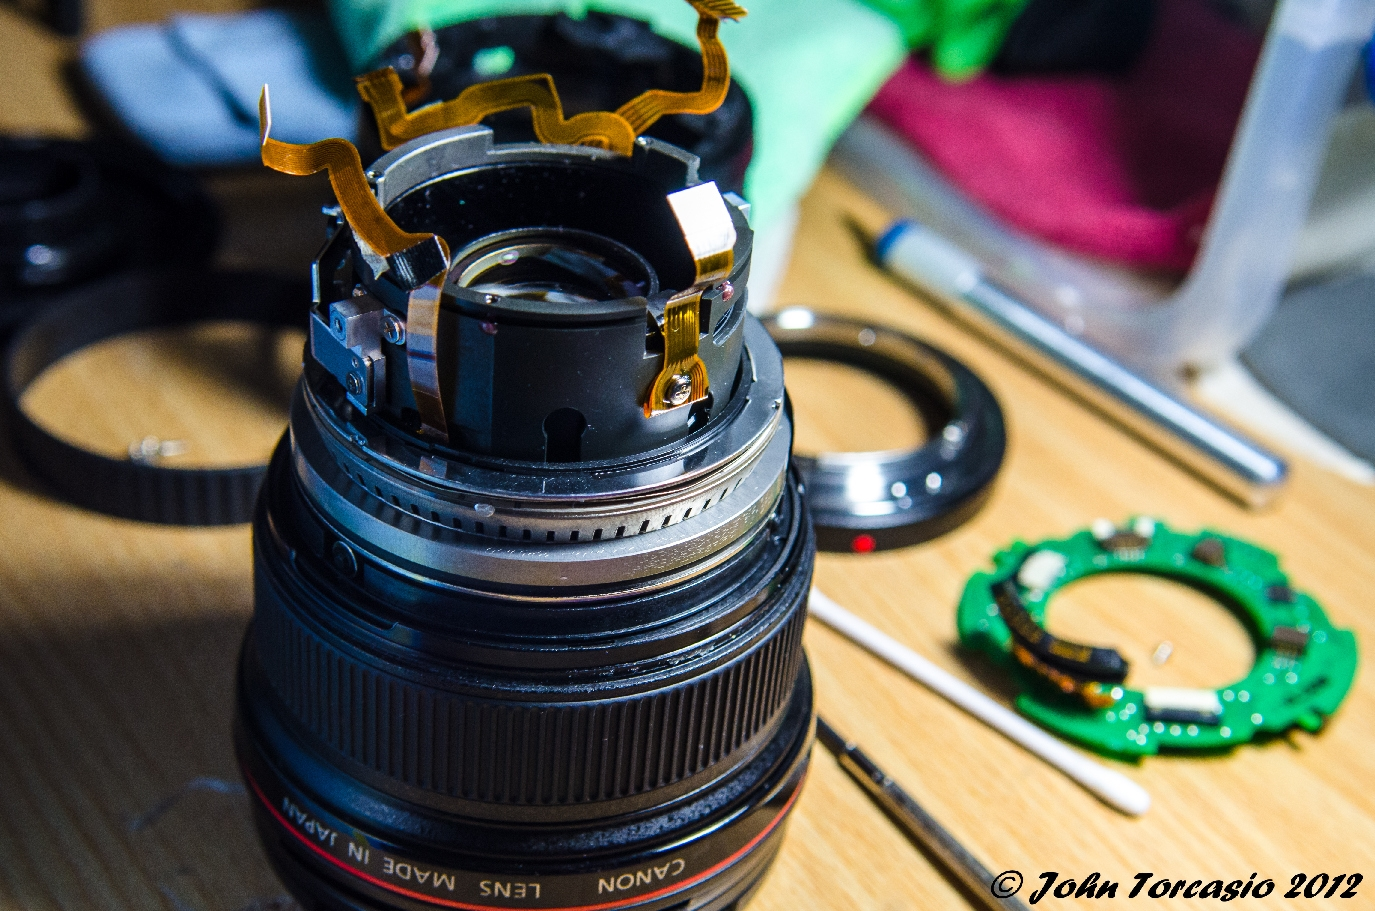 Canon Lens 17-40mm EF f4L USM Casing removed